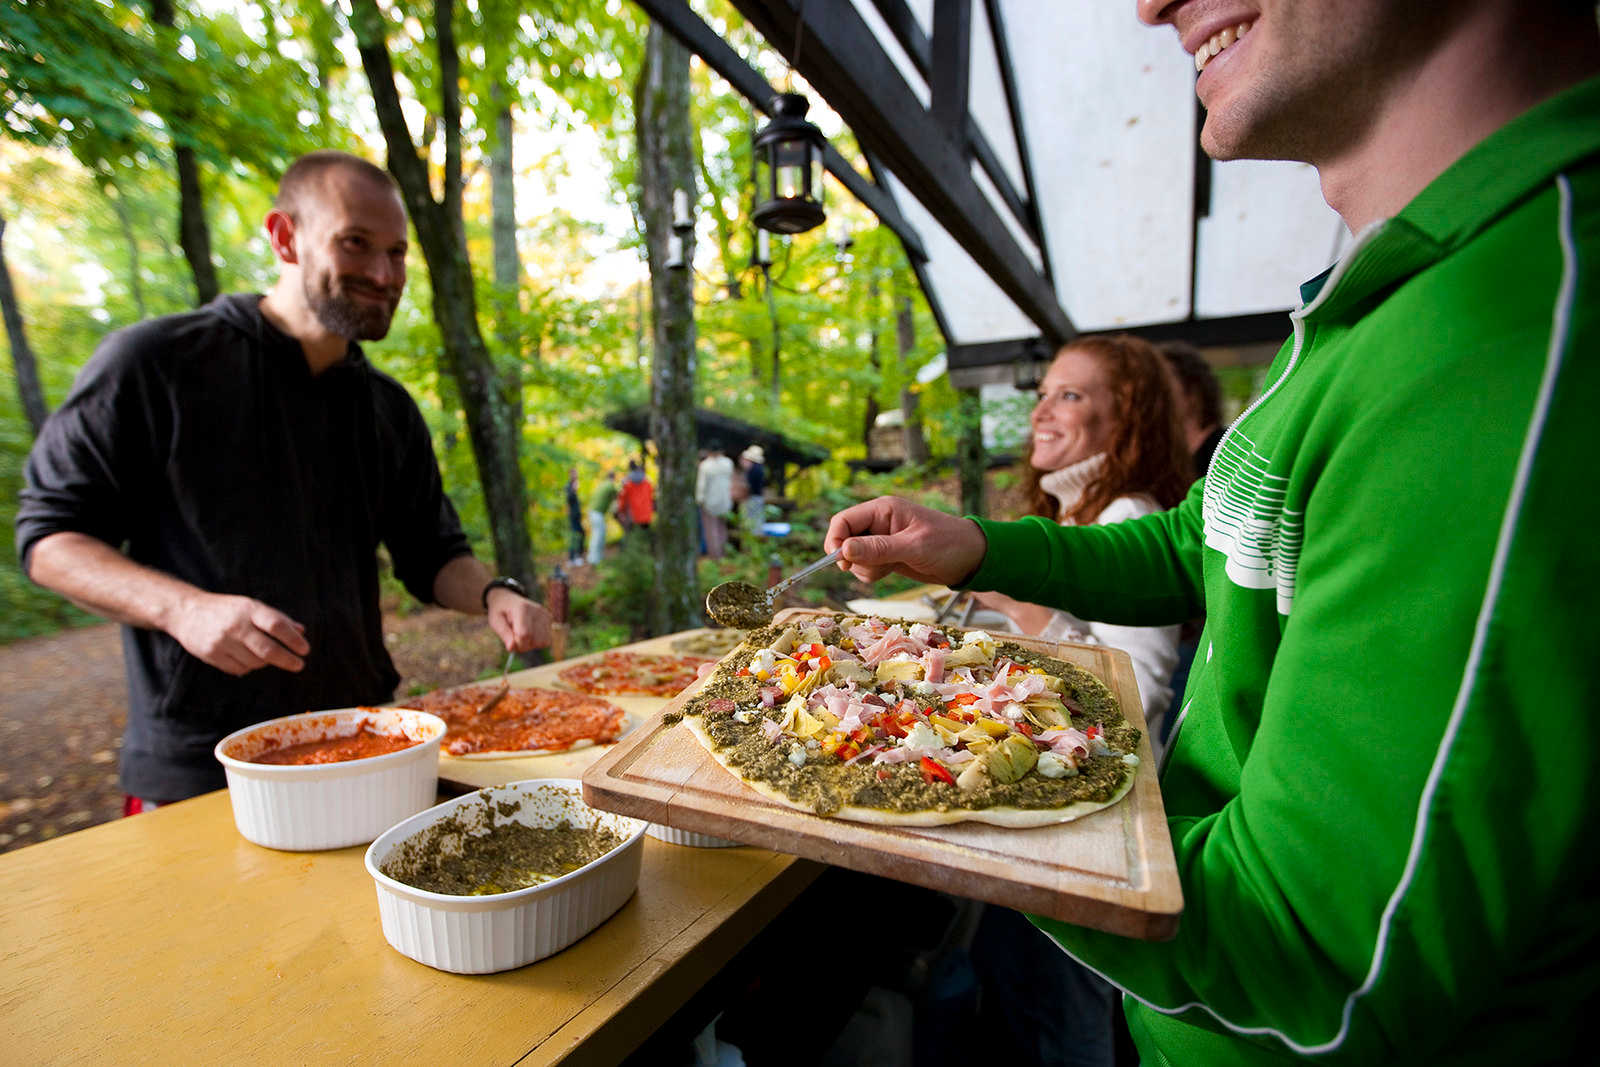 Guests making their own pizza in the oven in the forest